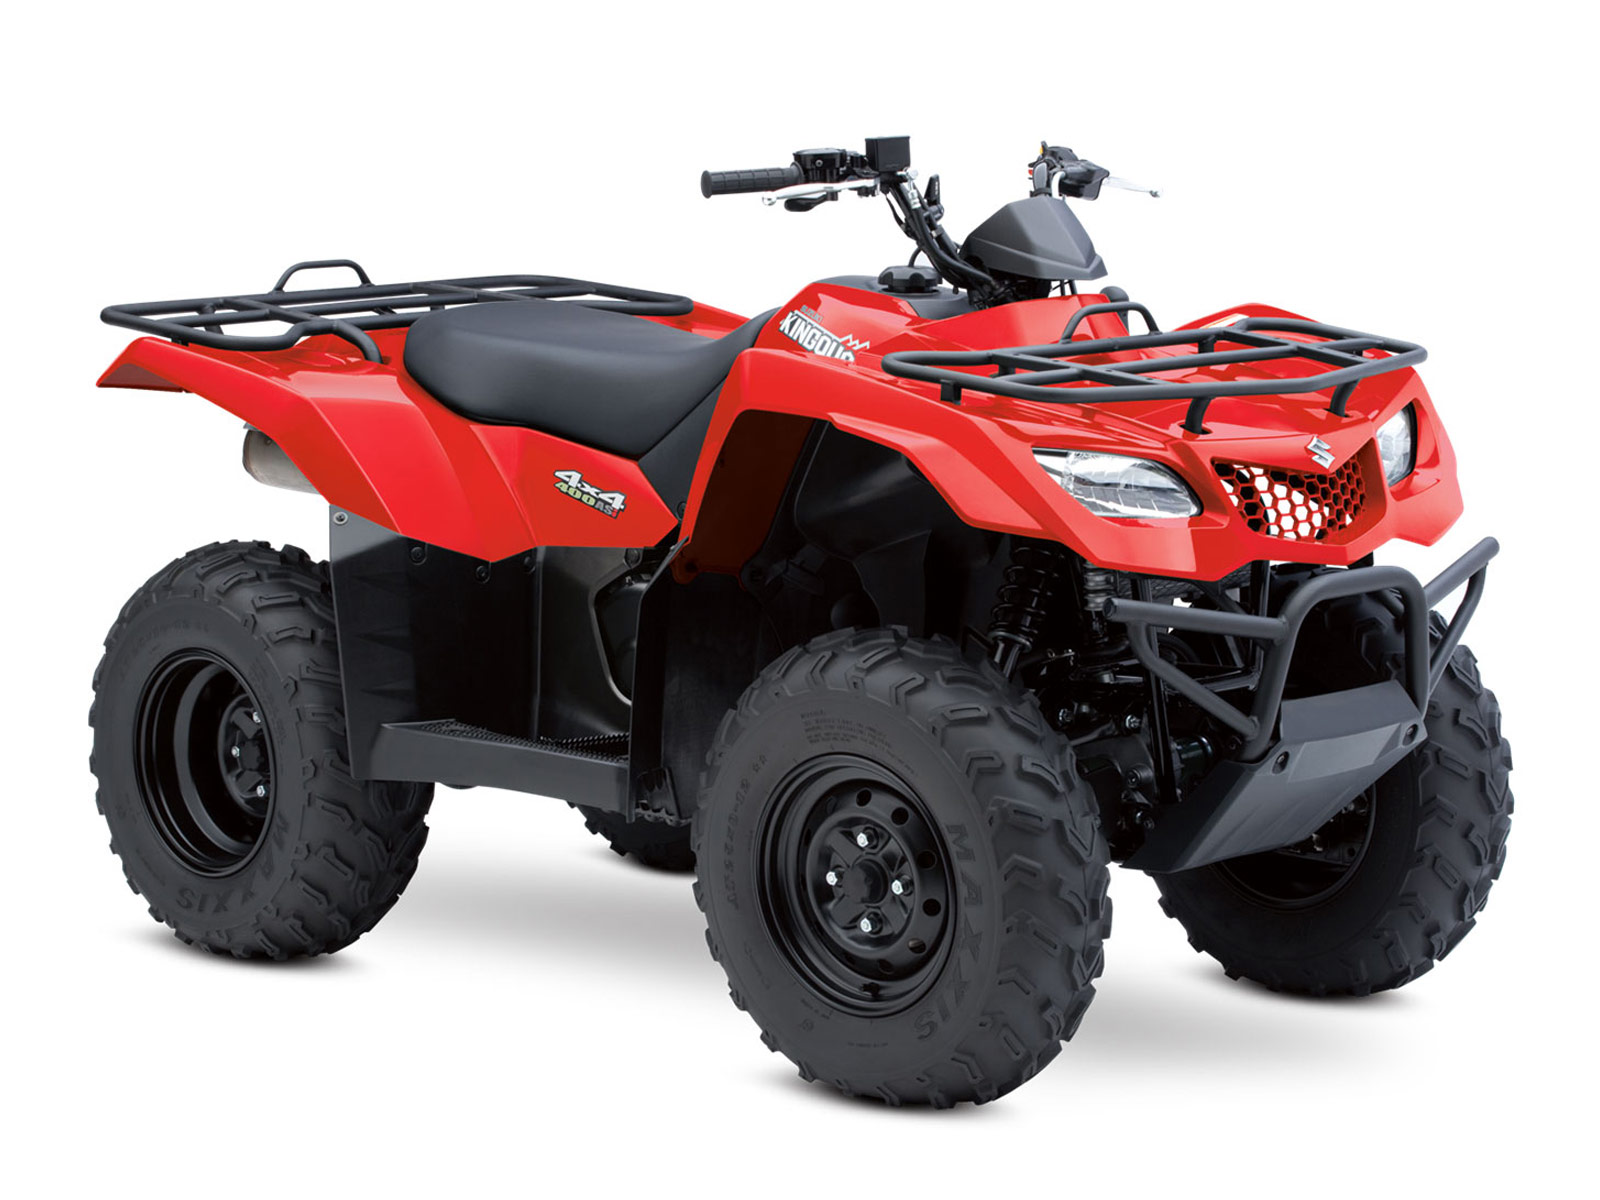 2012 suzuki kingquad 400asi atv pictures. Black Bedroom Furniture Sets. Home Design Ideas